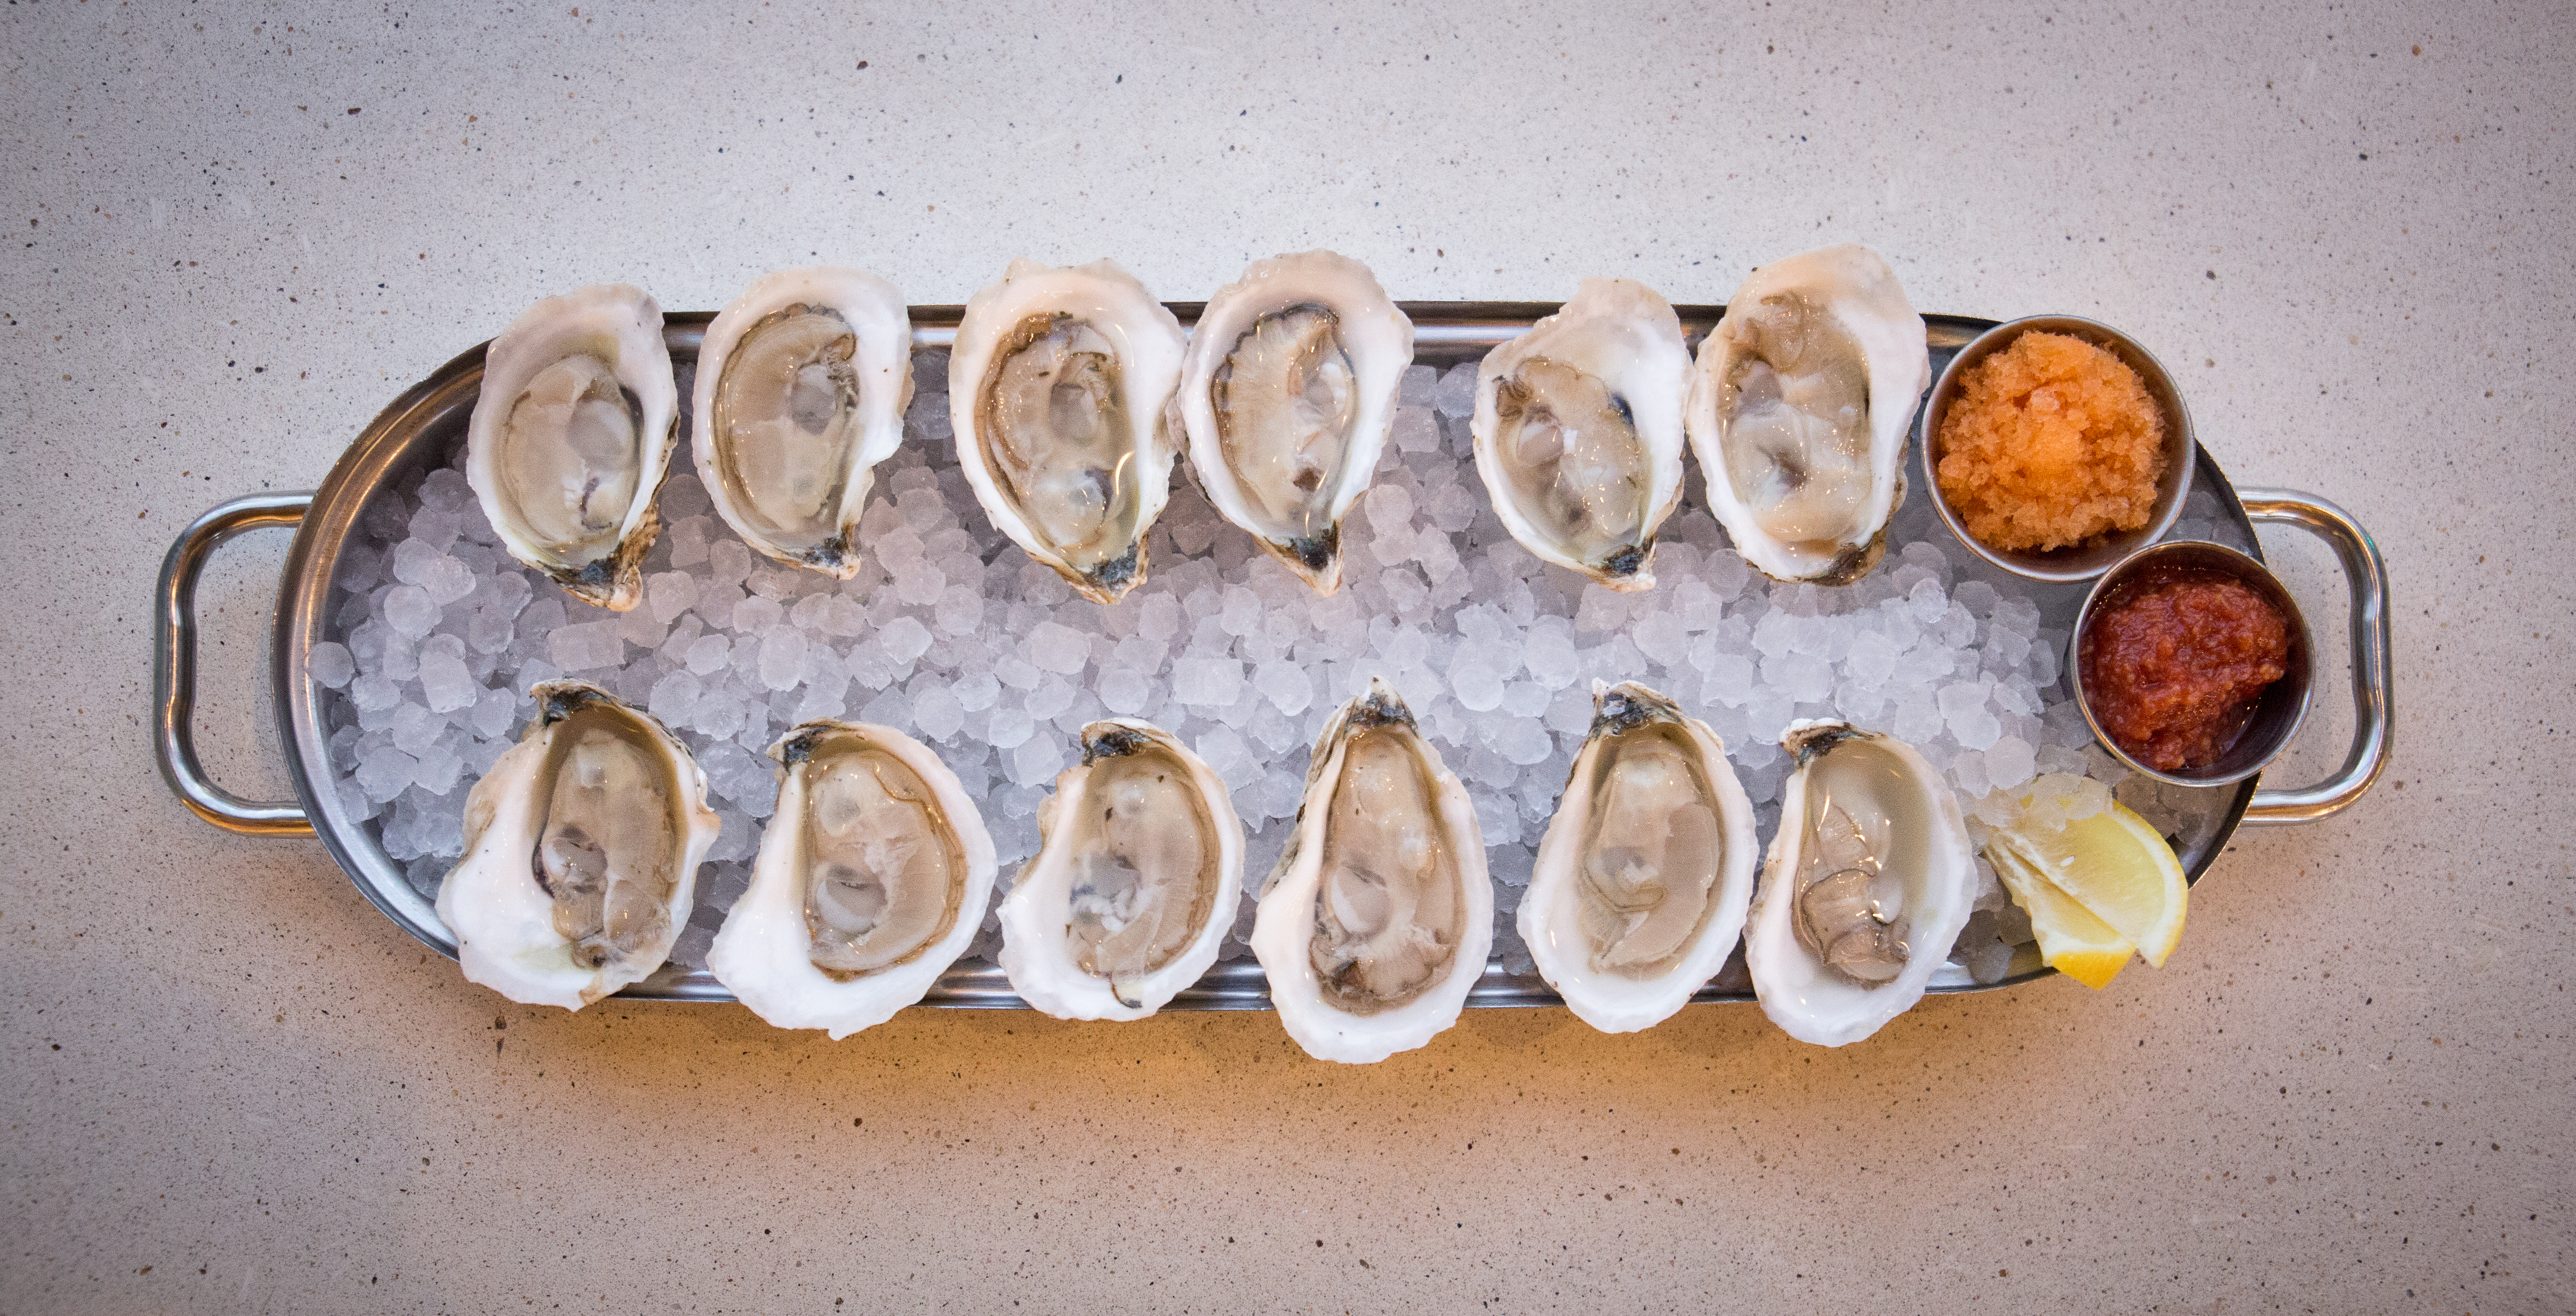 Overhead view of a dozen oysters on ice on an elongated silver tray with sauces and a lemon wedge